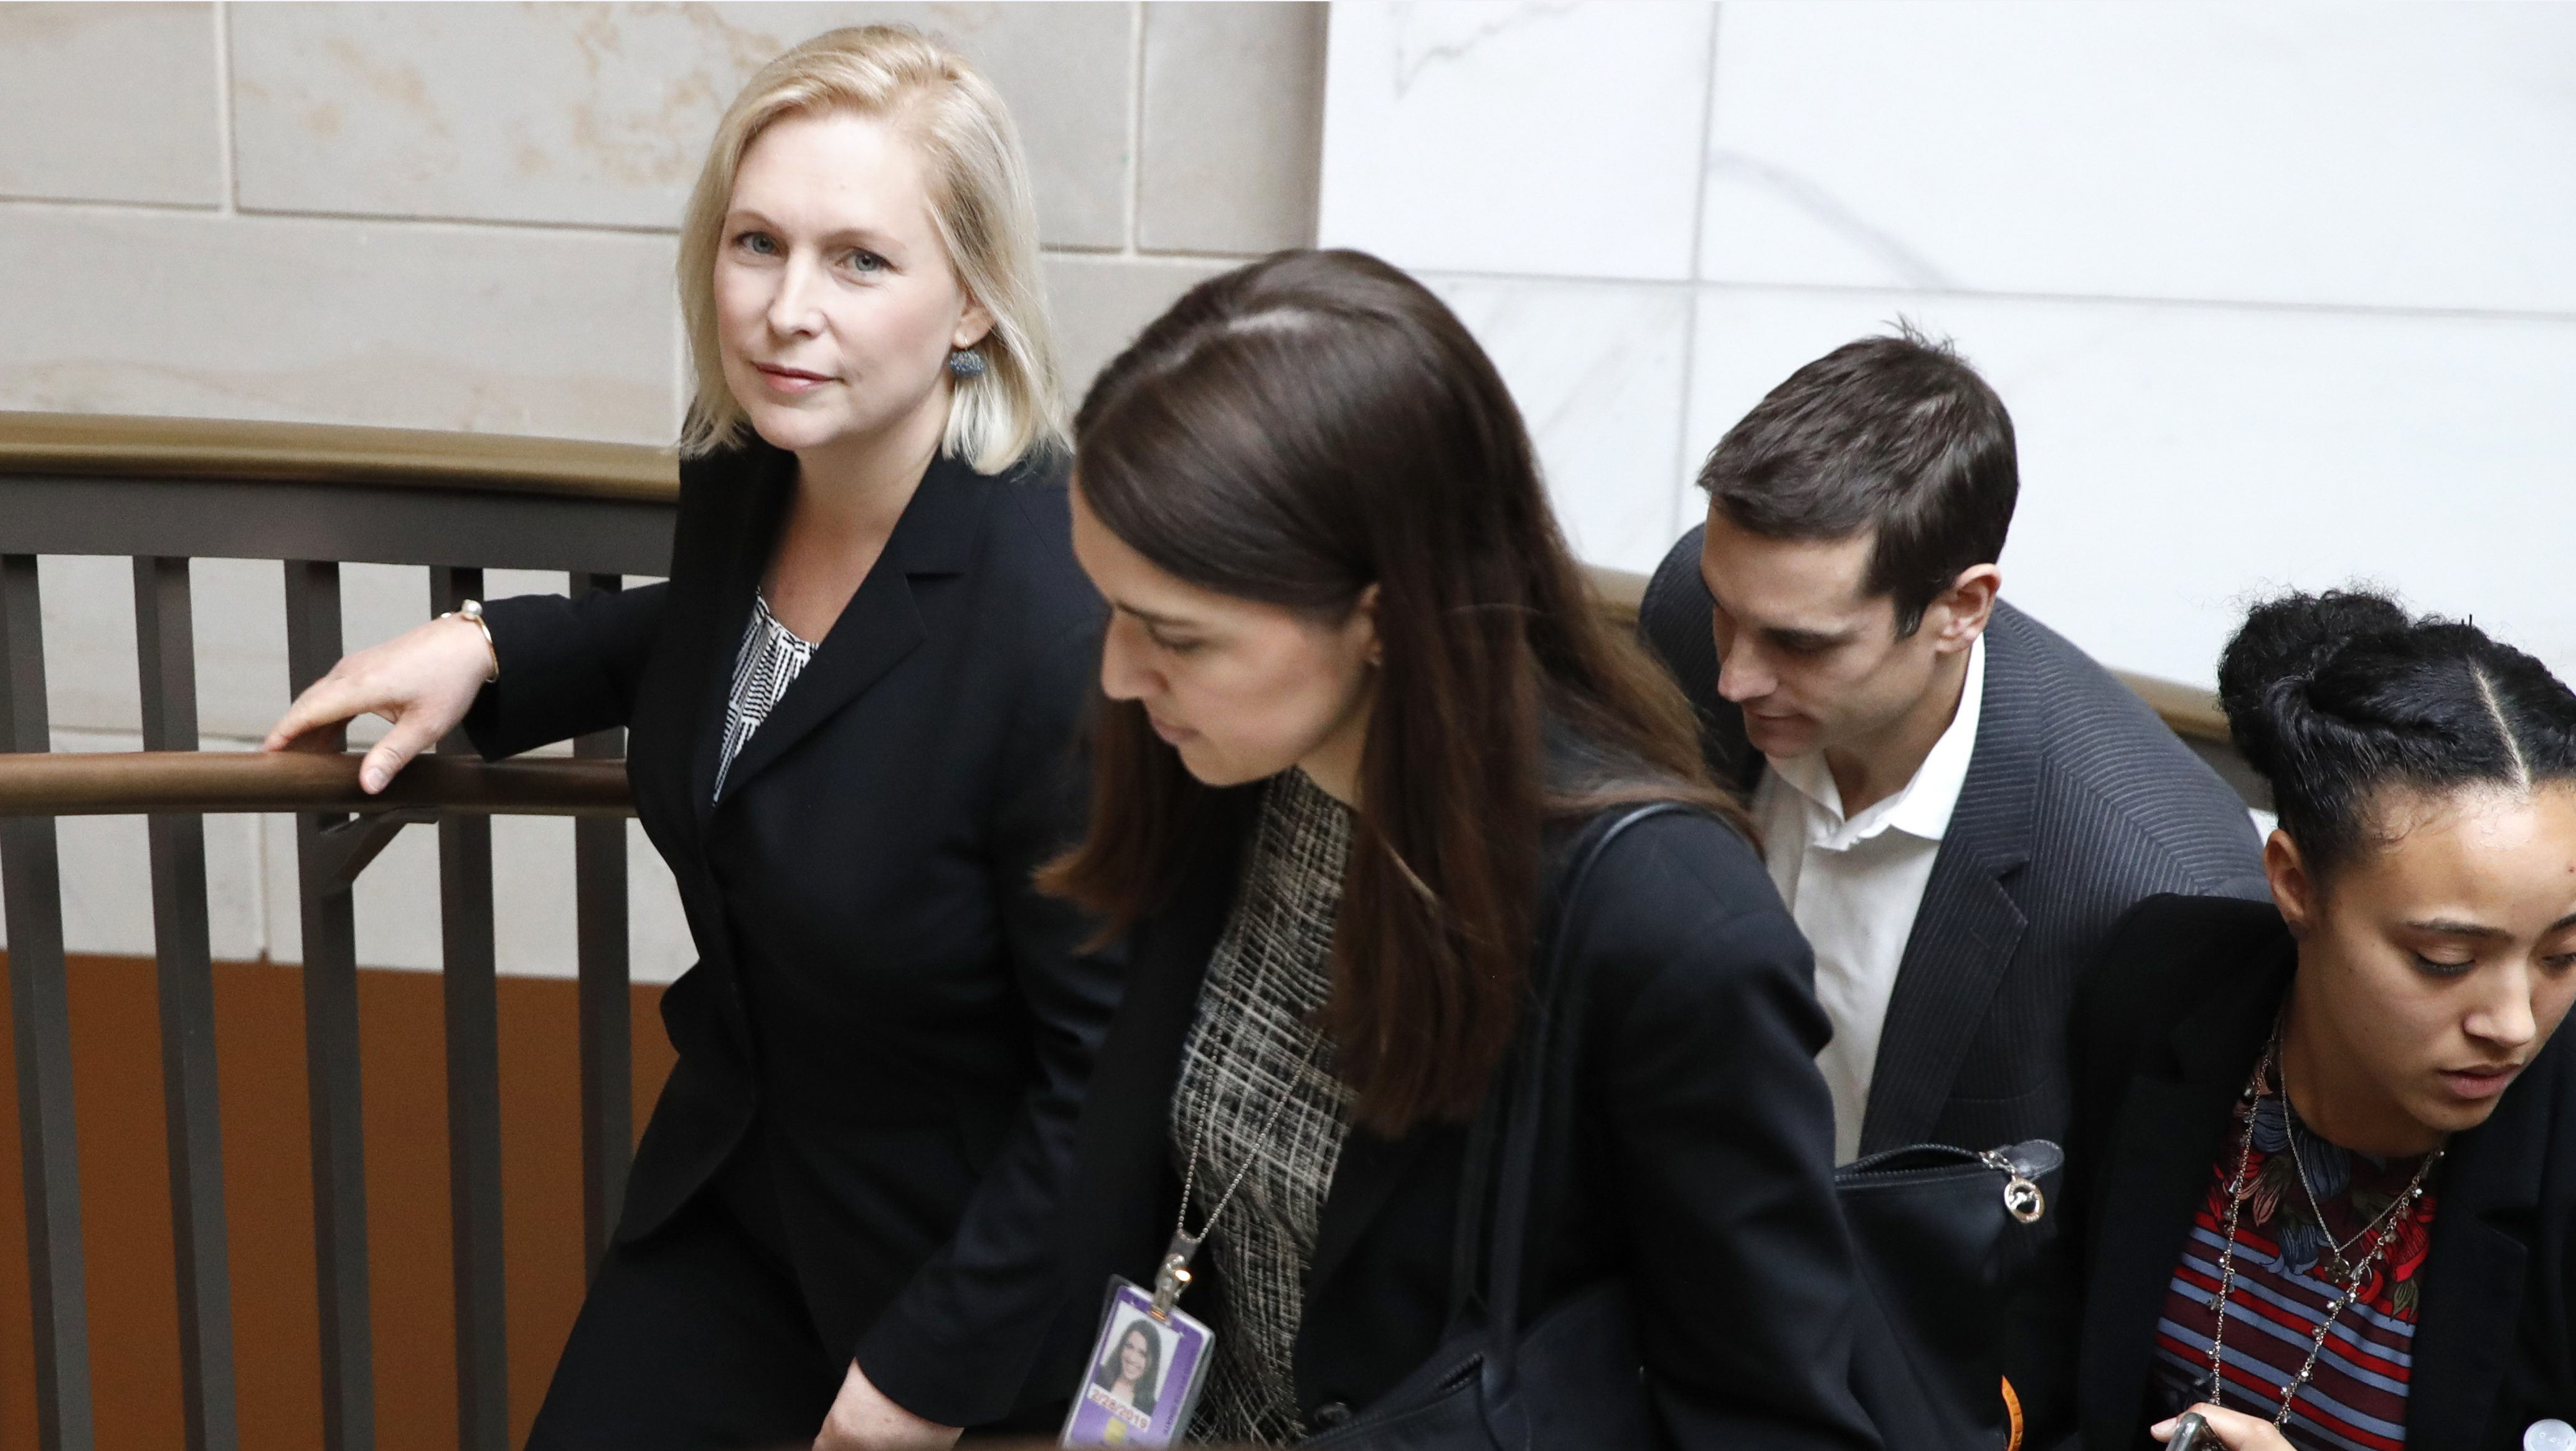 """Sen. Kirsten Gillibrand, D-N.Y., left, walks up a staircase after attending a news conference, Tuesday, Dec. 12, 2017, on Capitol Hill in Washington.  Gillibrand says President Donald Trump's latest tweet about her was a """"sexist smear"""" aimed at silencing her voice.   (AP Photo/Jacquelyn Martin)"""